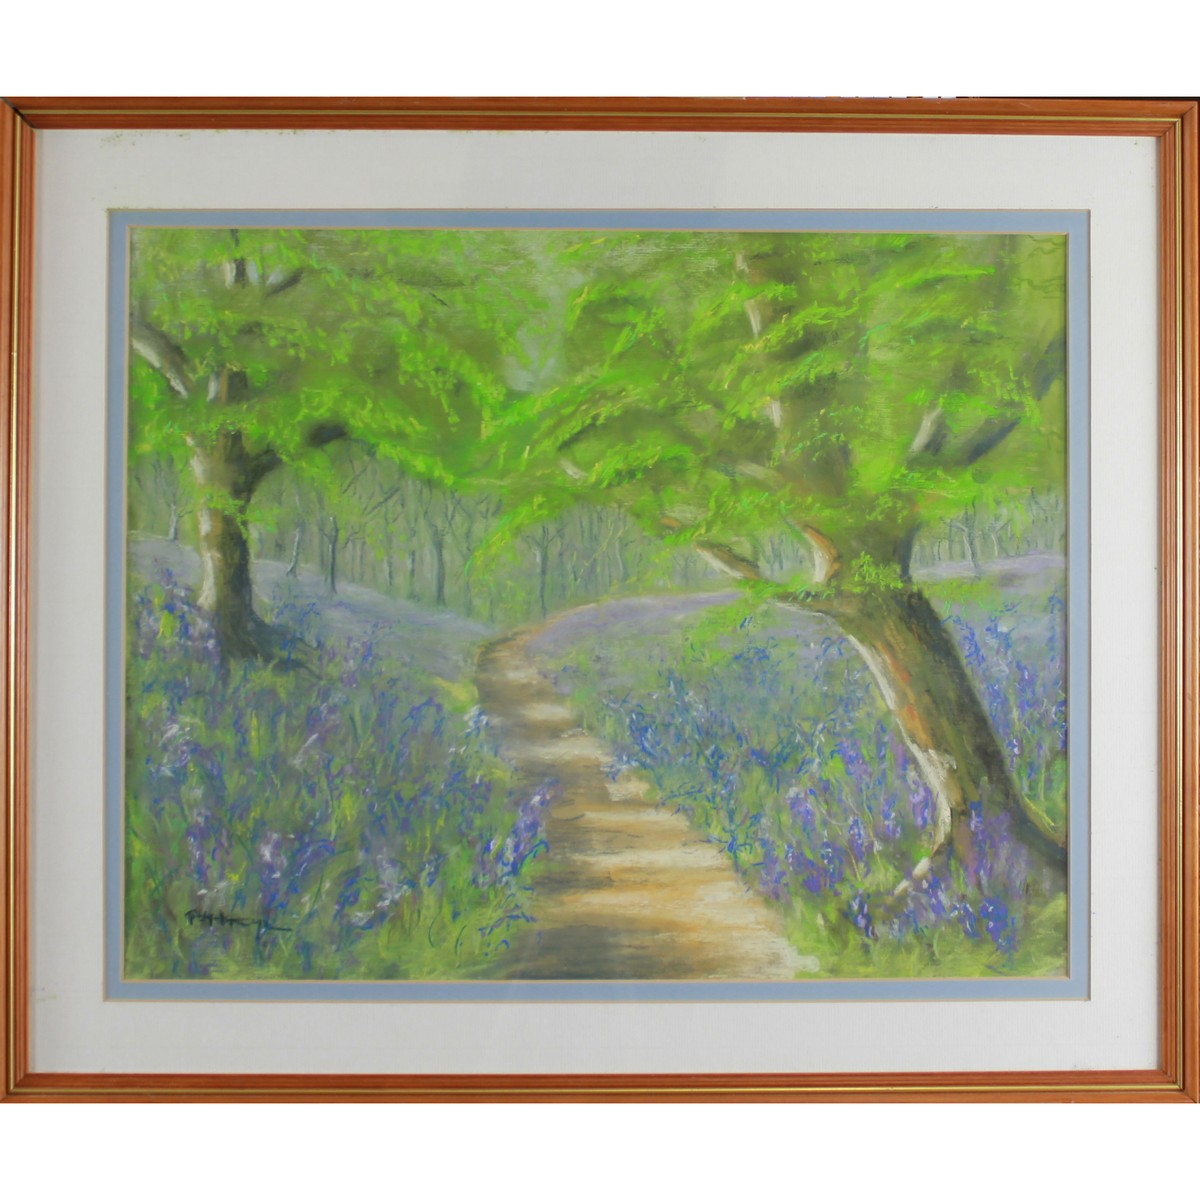 Lot 48 - Thompson P. Contemporary British AR, Bluebell Wood